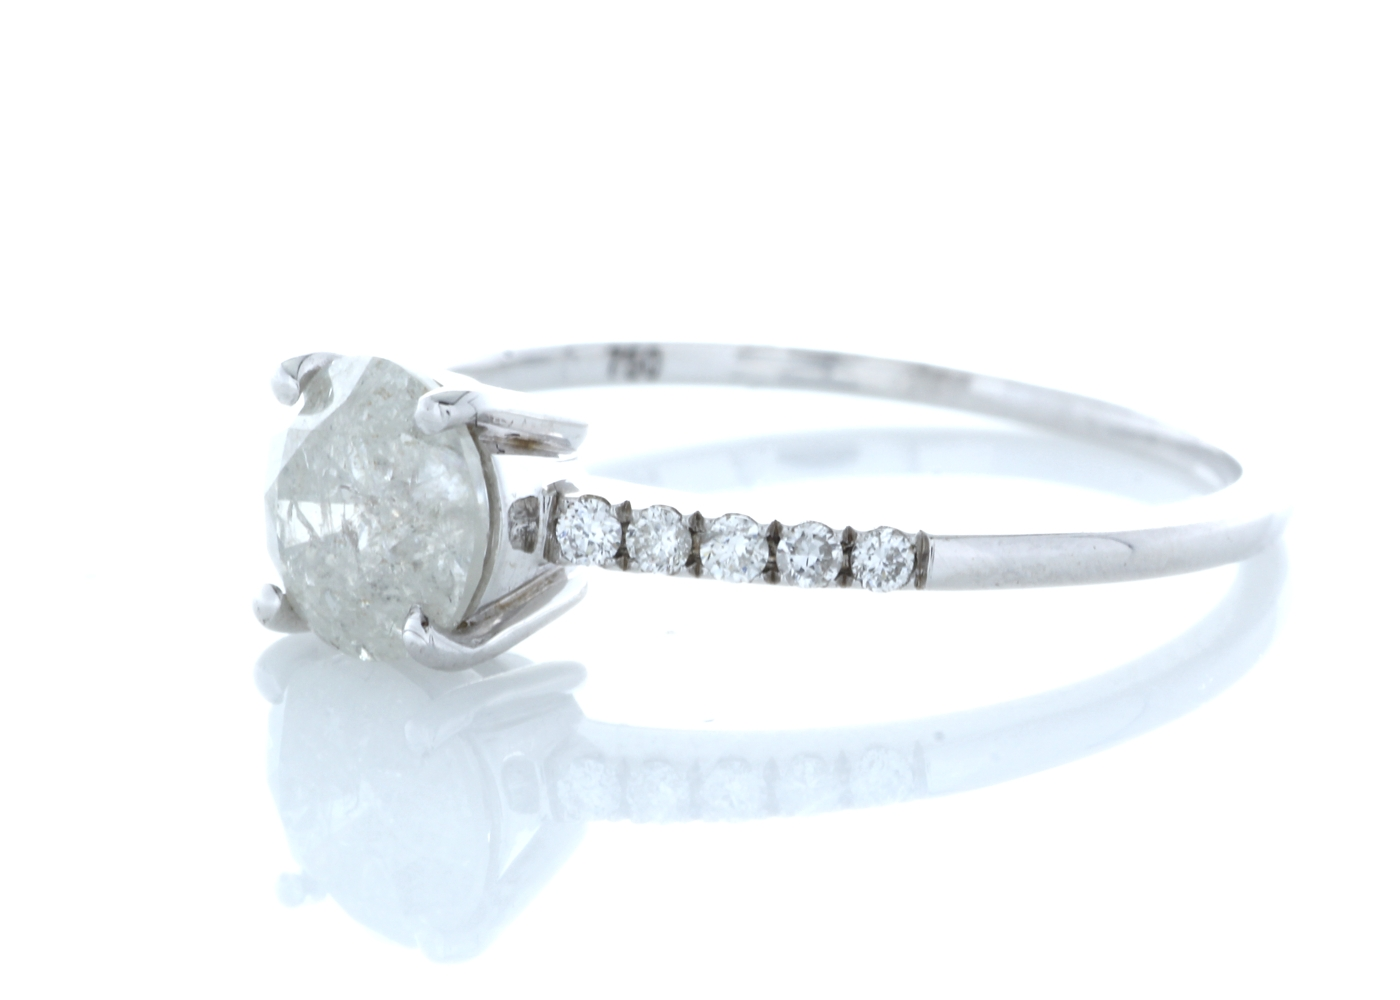 18ct White Gold Stone Set Shoulders Diamond Ring 1.04 Carats - Image 2 of 5